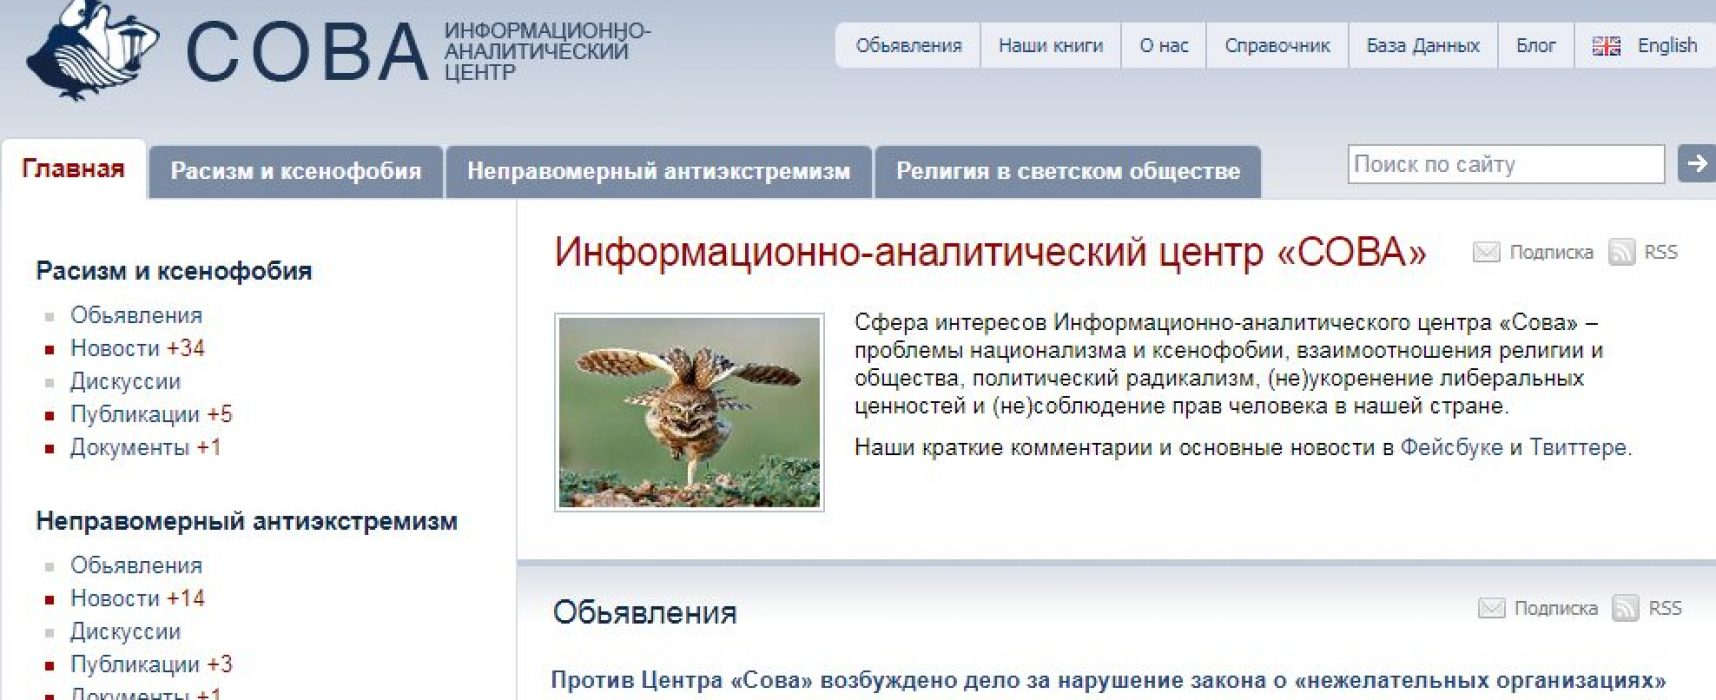 It turns out that a simple hyperlink is enough to trigger Russia's ban on 'undesirable organizations'